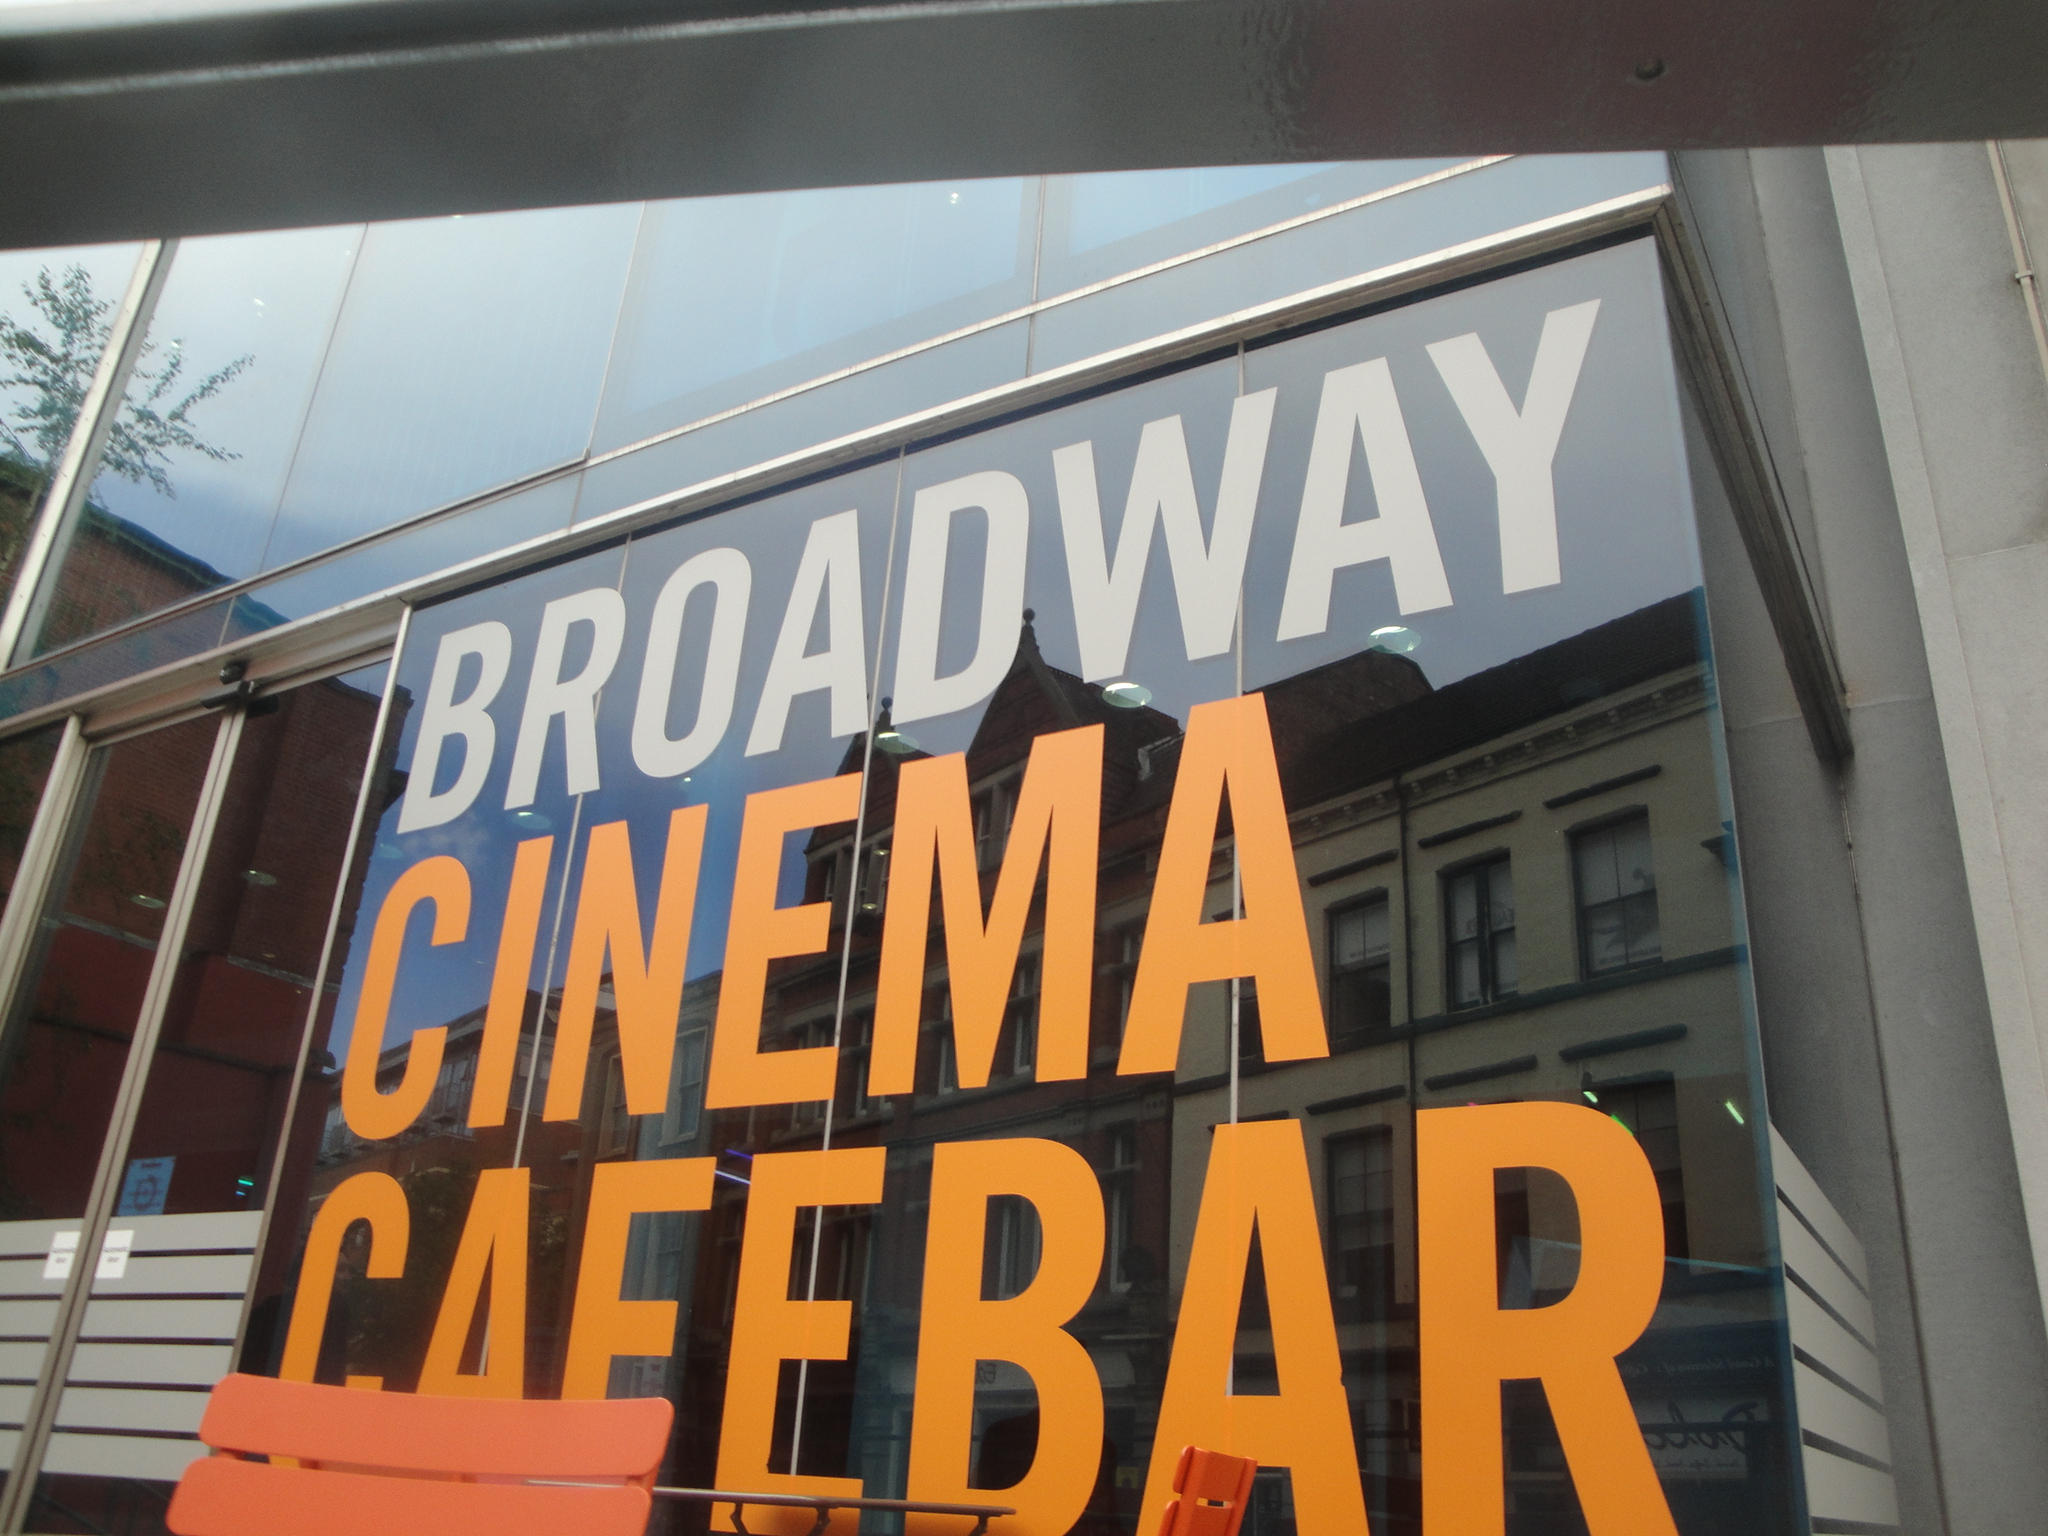 The broadway cafe